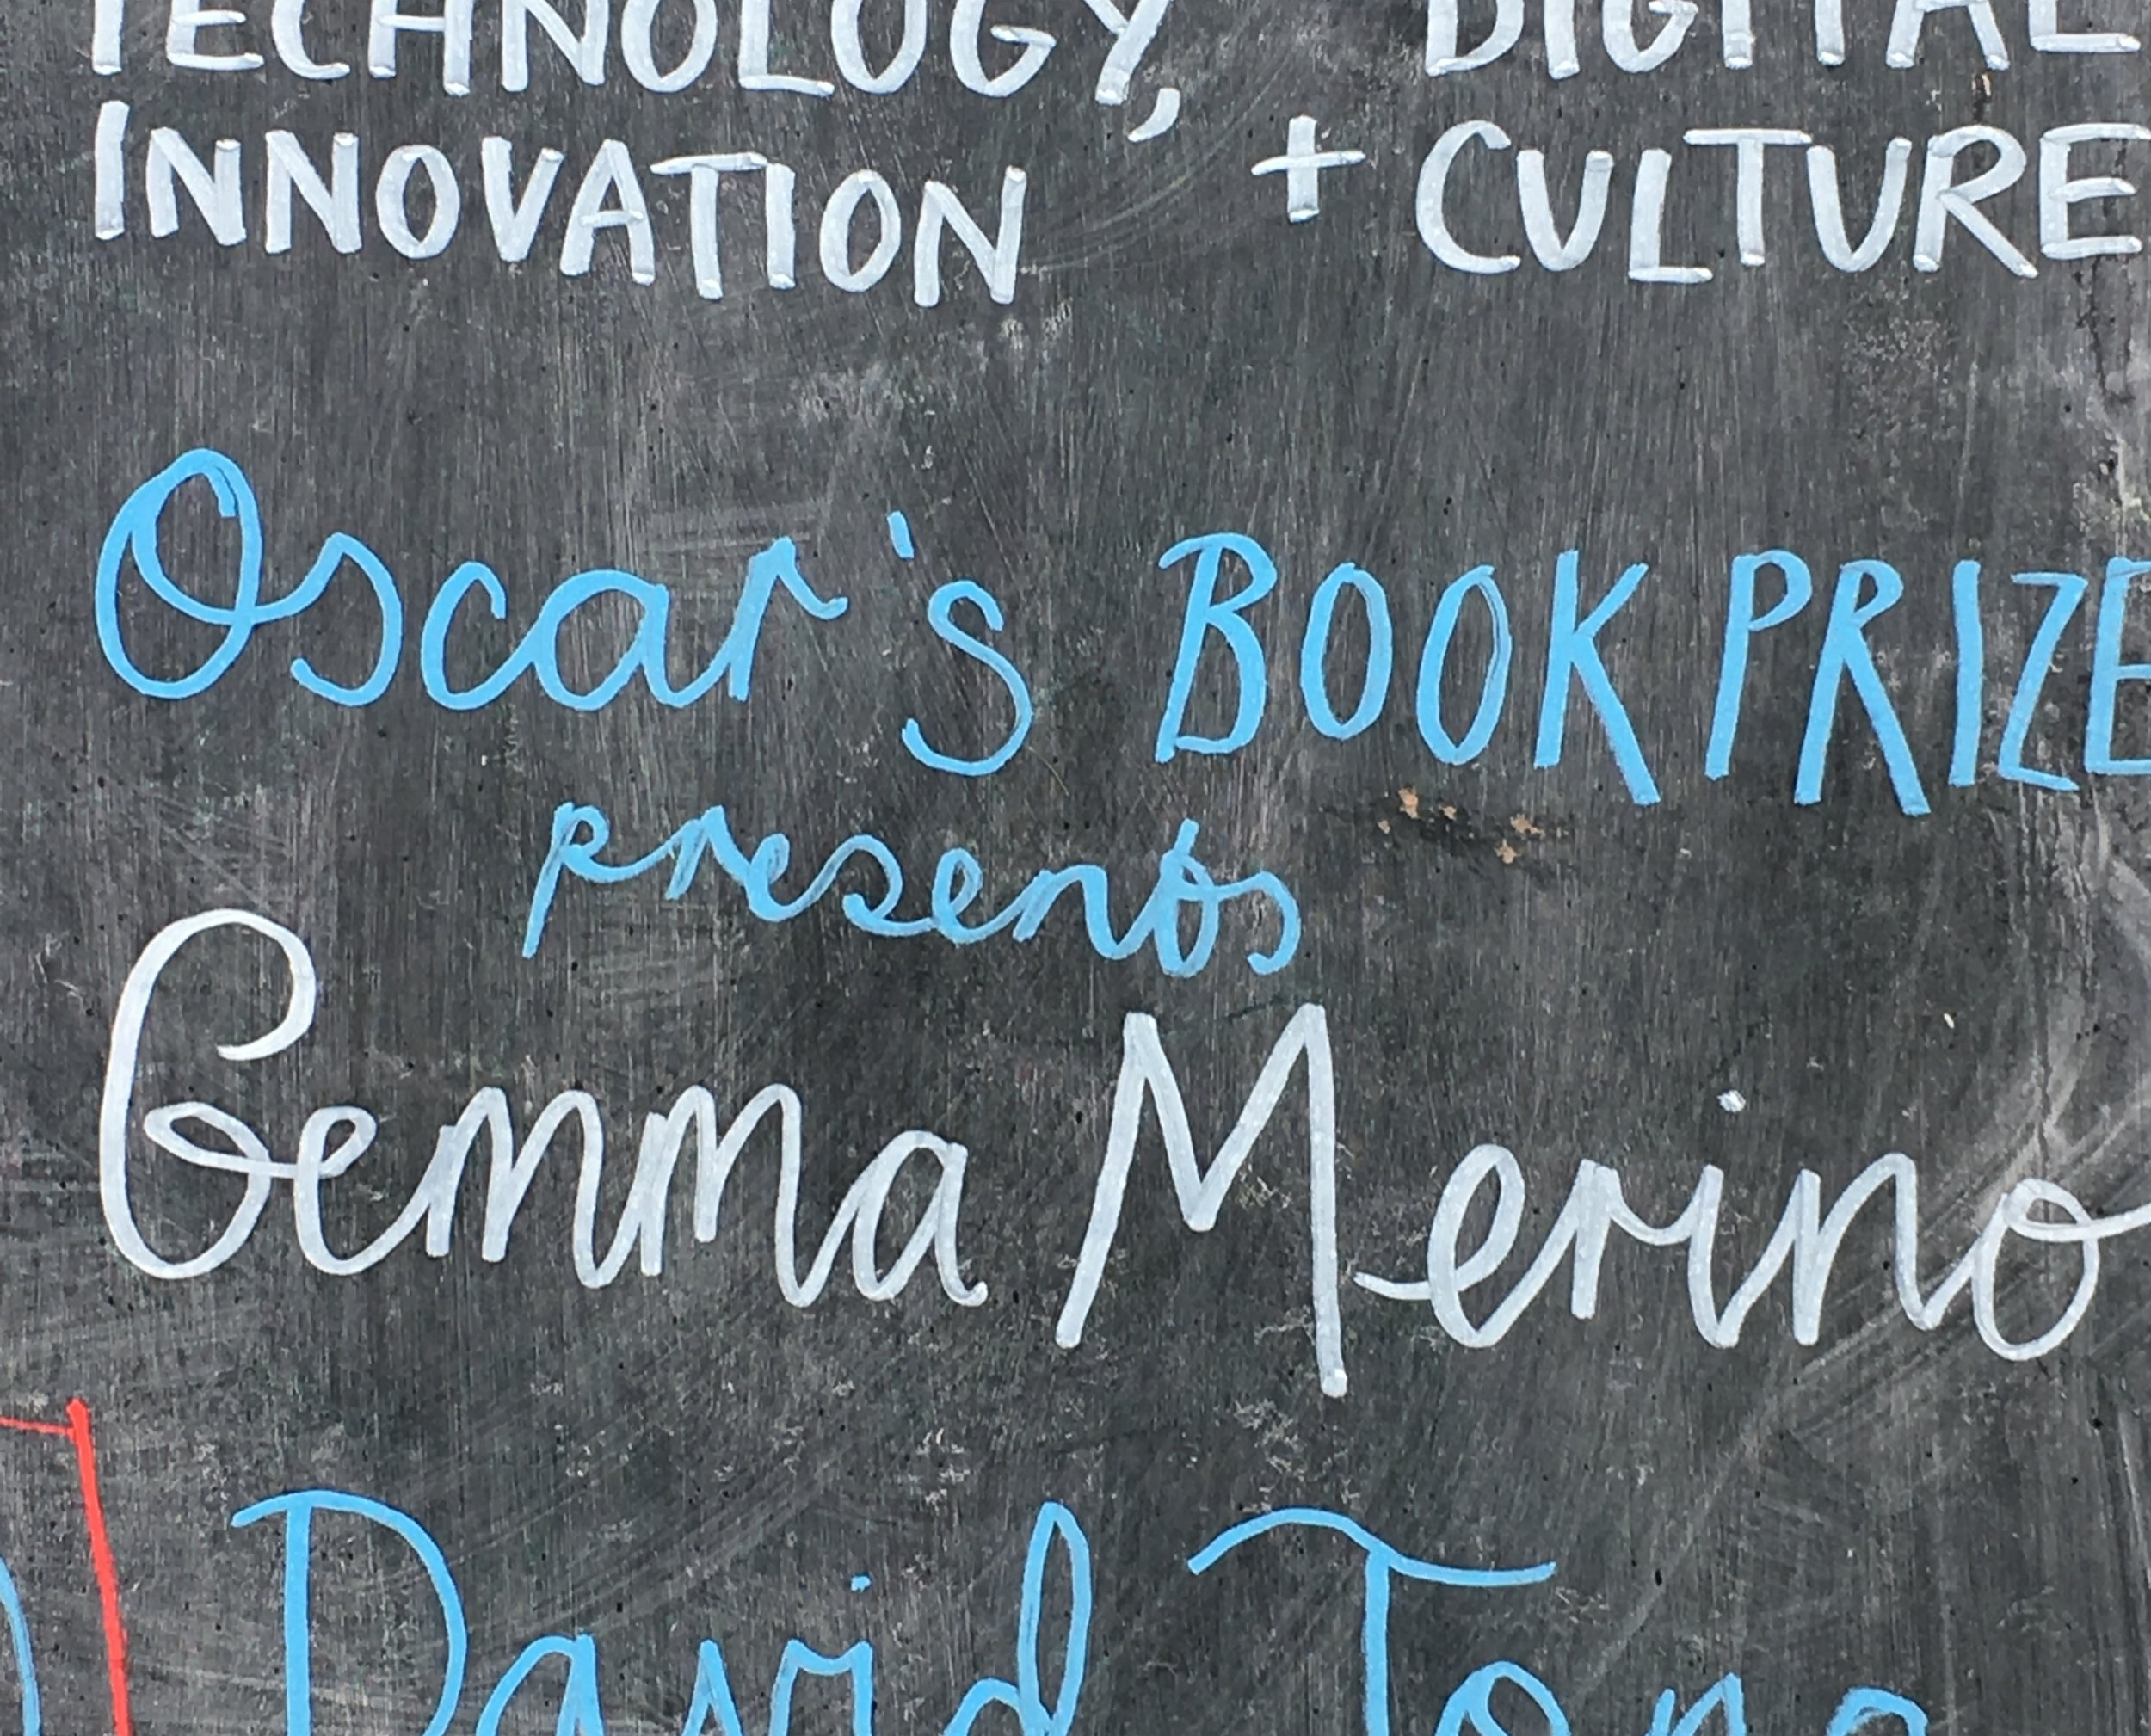 Oscar's Book Prize hosts its debut session at the Hay Festival in Hay-on-Wye